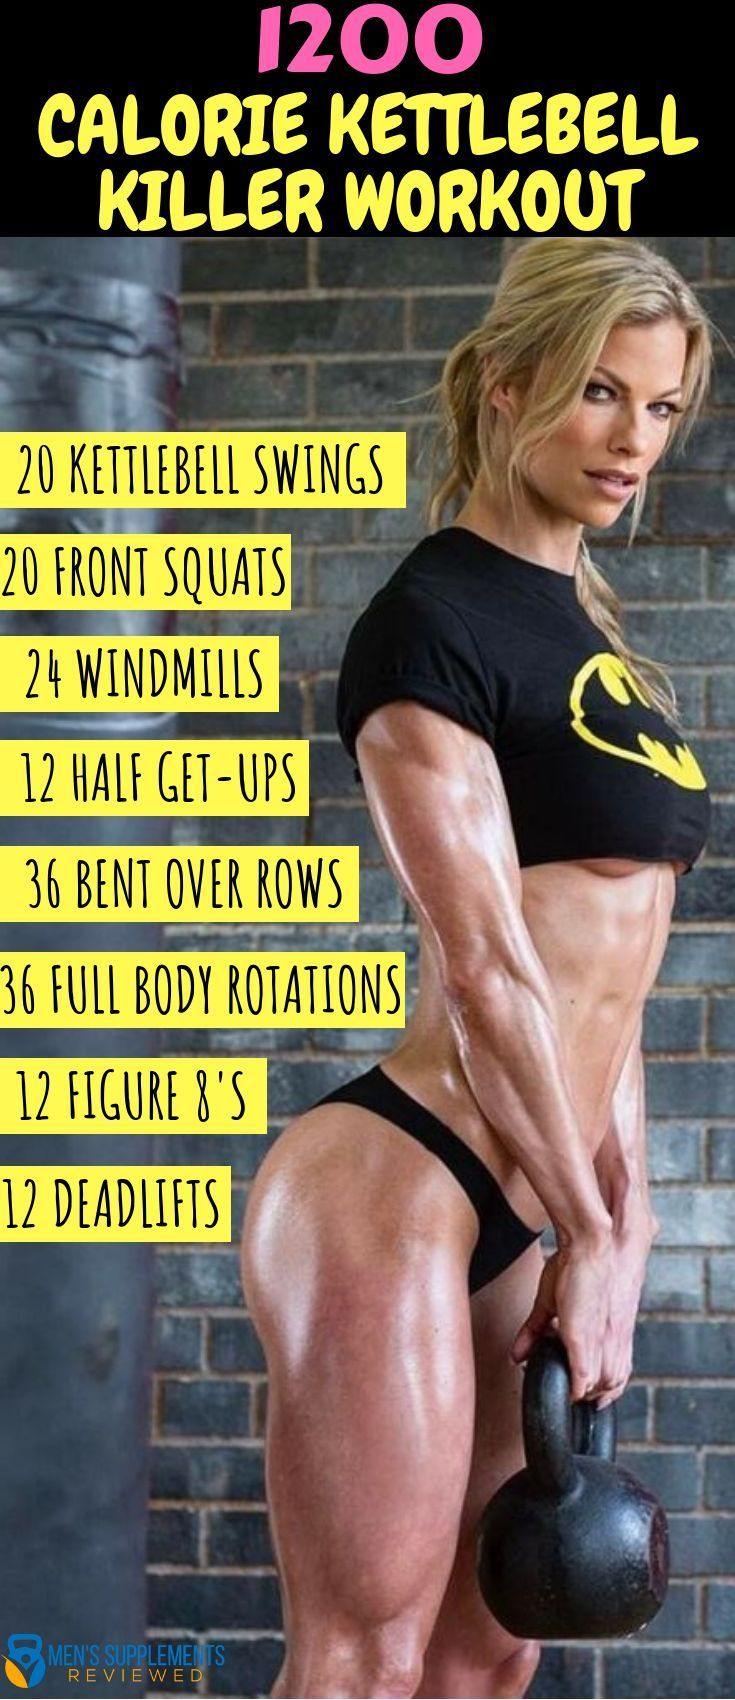 #fitness body #kettlebell #Shredded #workout Swing it to get awesome body! Effective kettlebell circ...